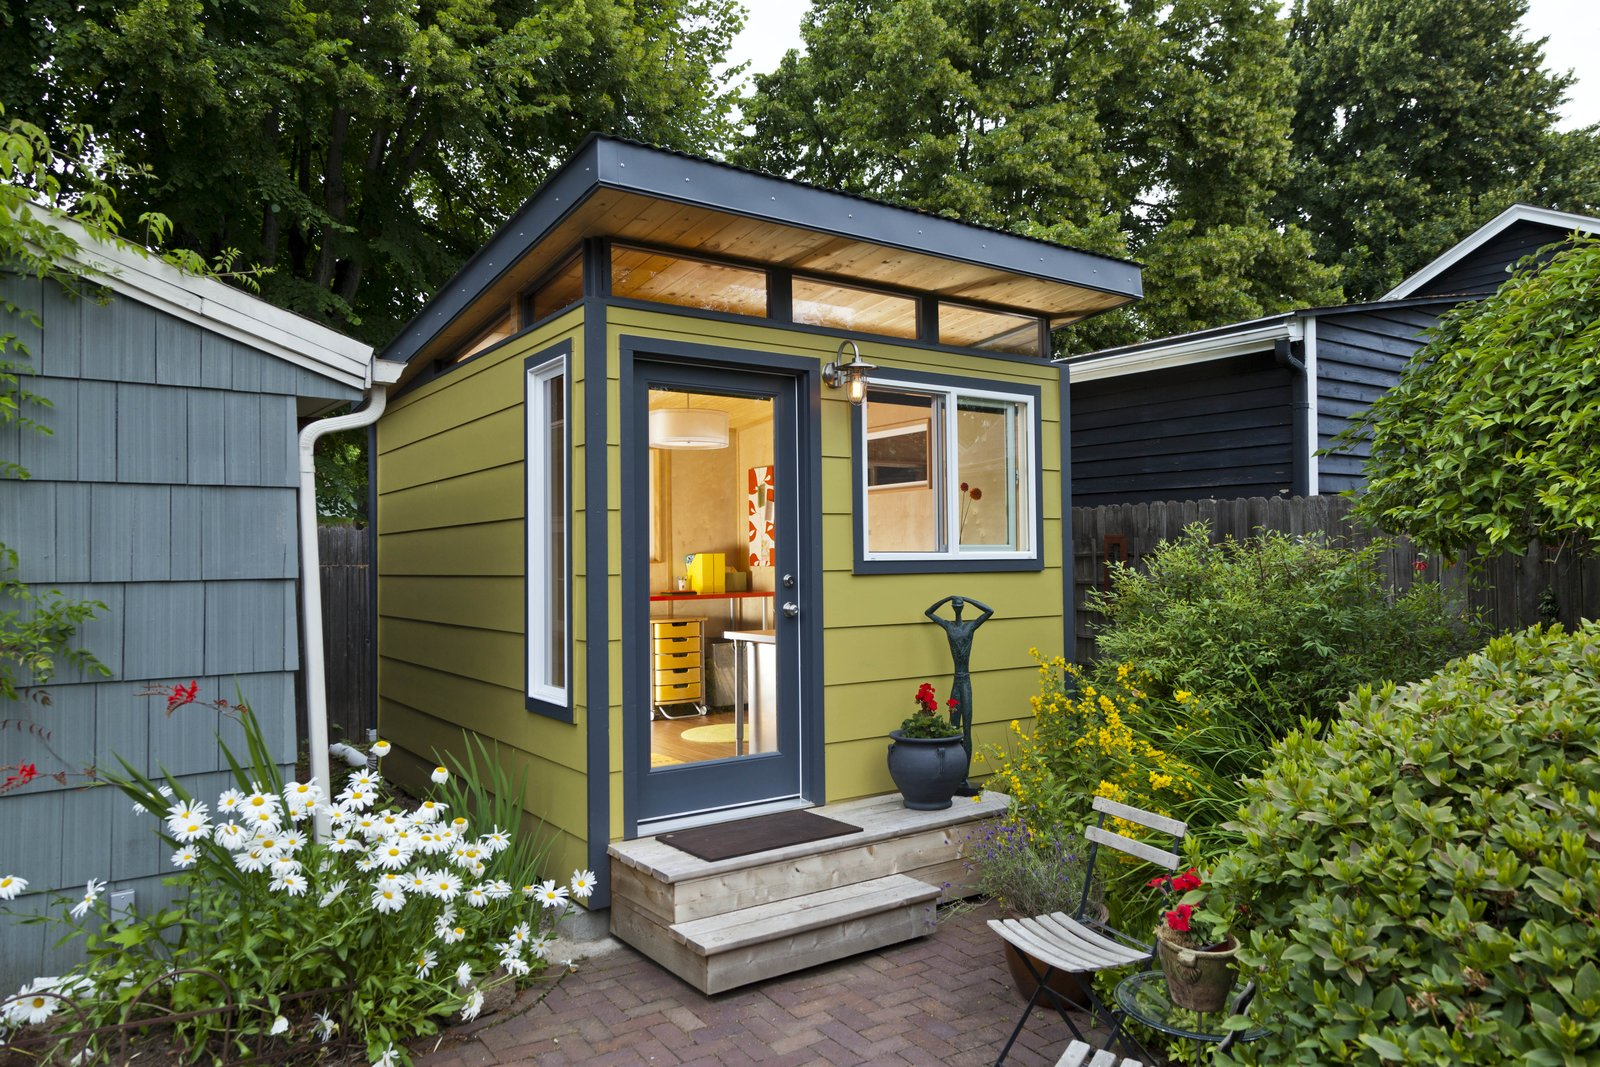 Man Cave She Shed : She shed ideas tiny house sol design man cave uk